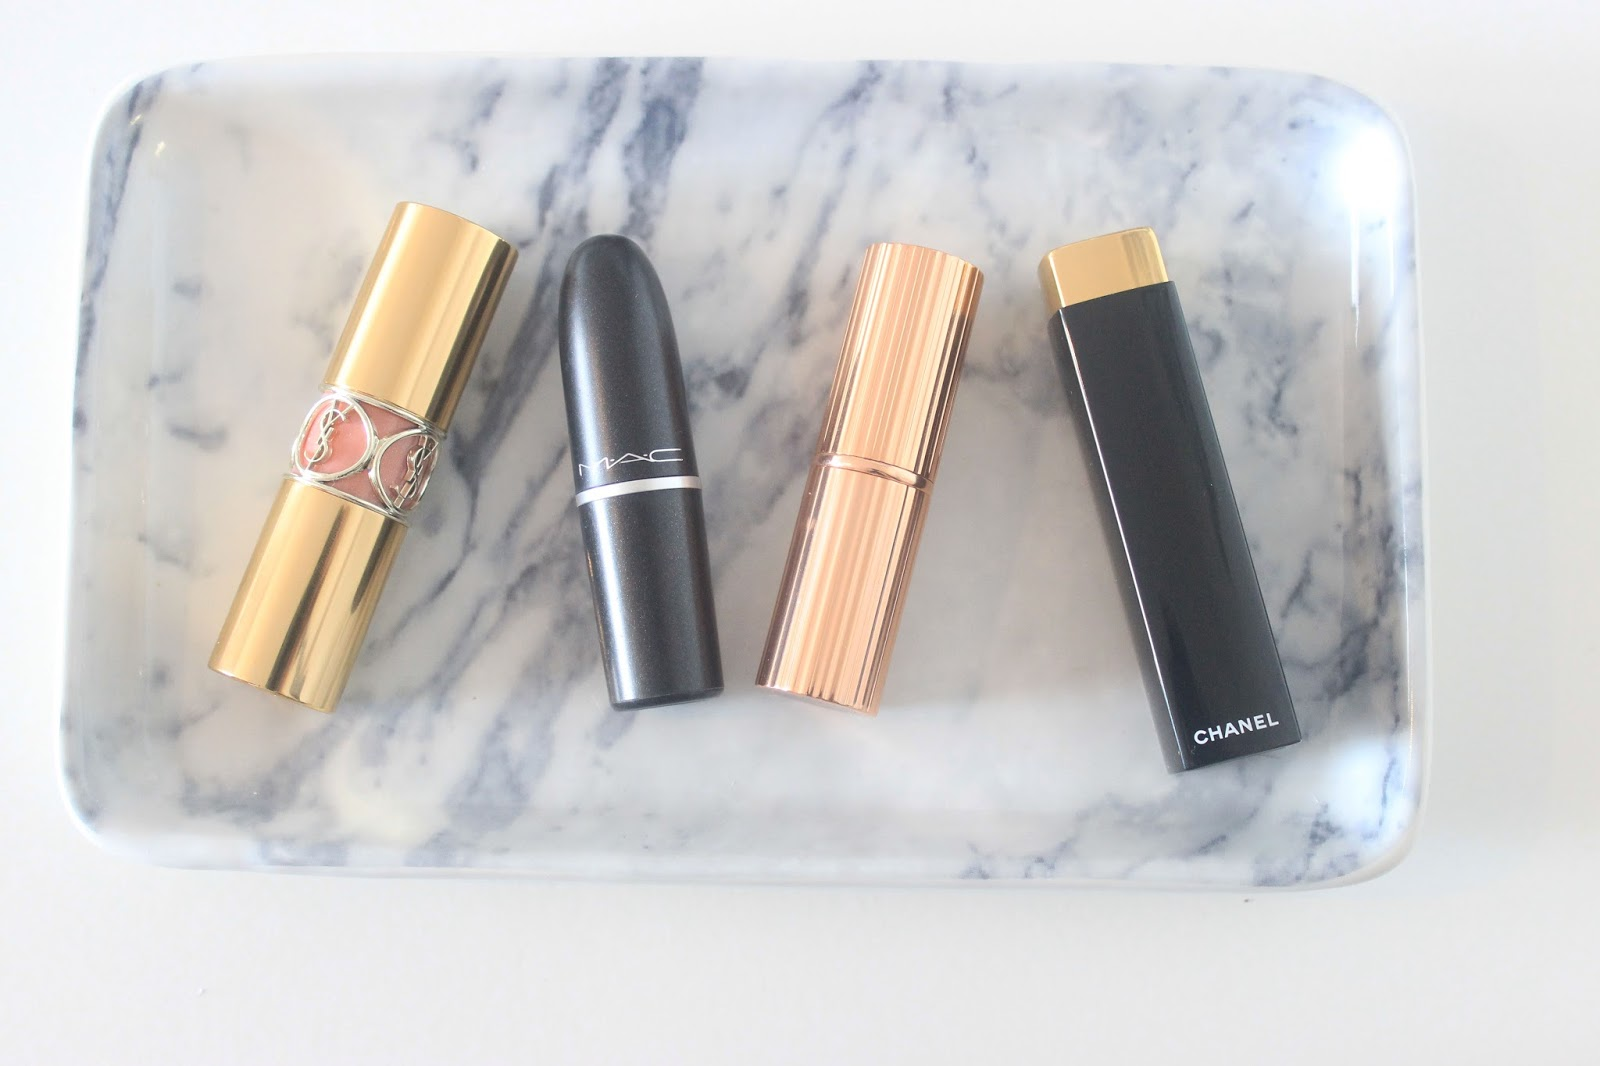 YSL Nude In Private, Charlotte Tilbury Bond Girl, MAC Brave, Chanel Pirate